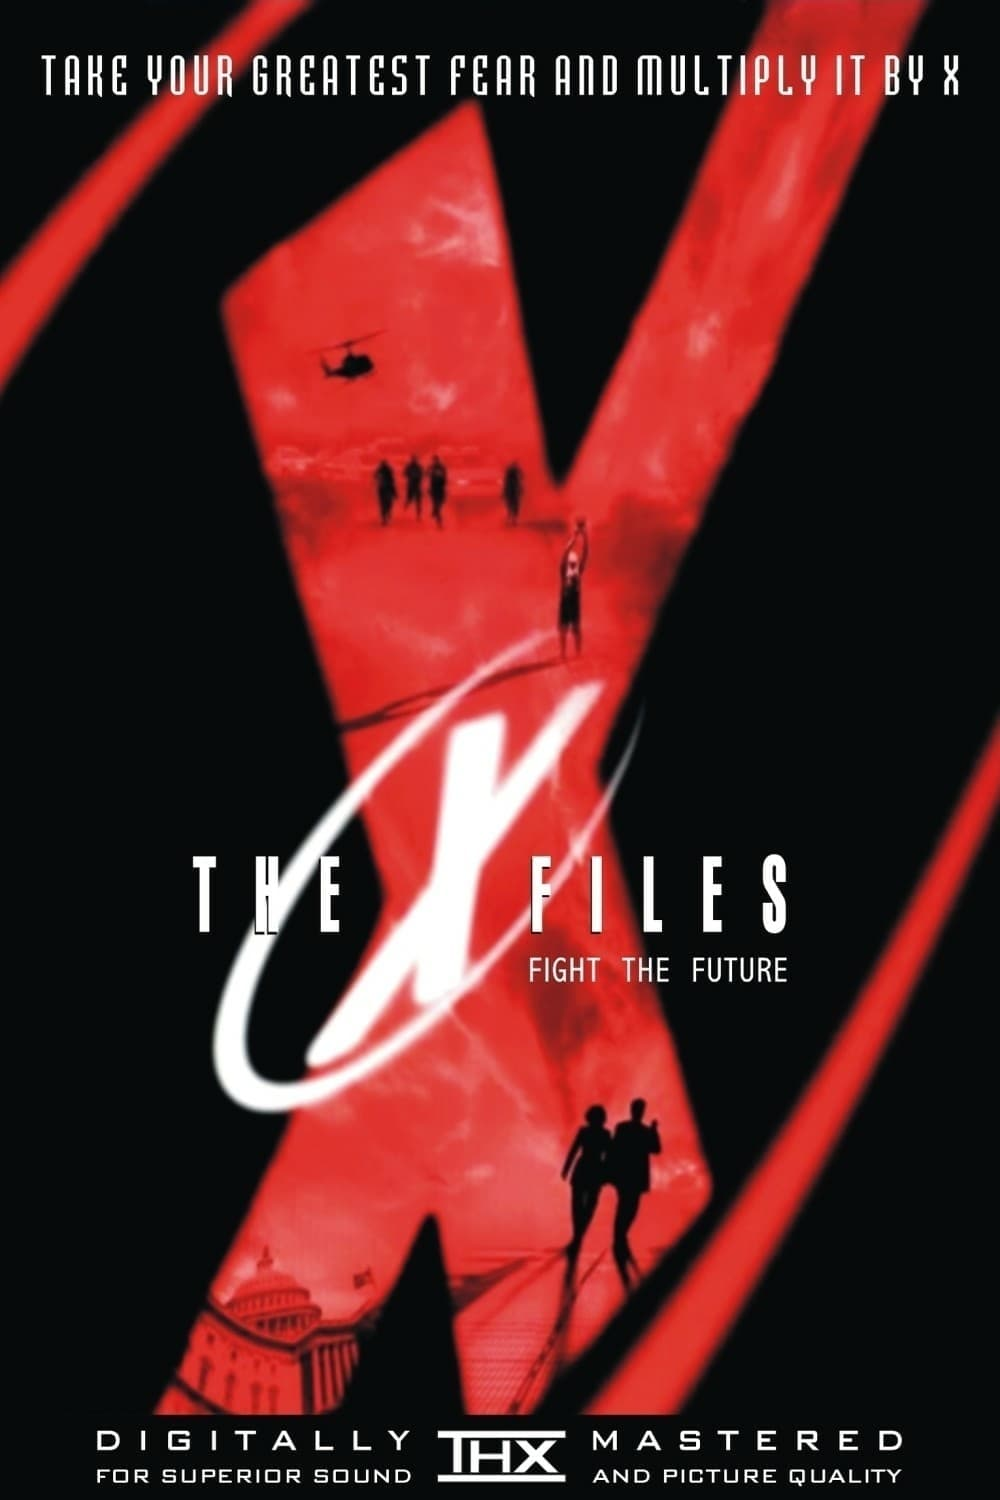 The Making of 'The X Files: Fight the Future' (1998)